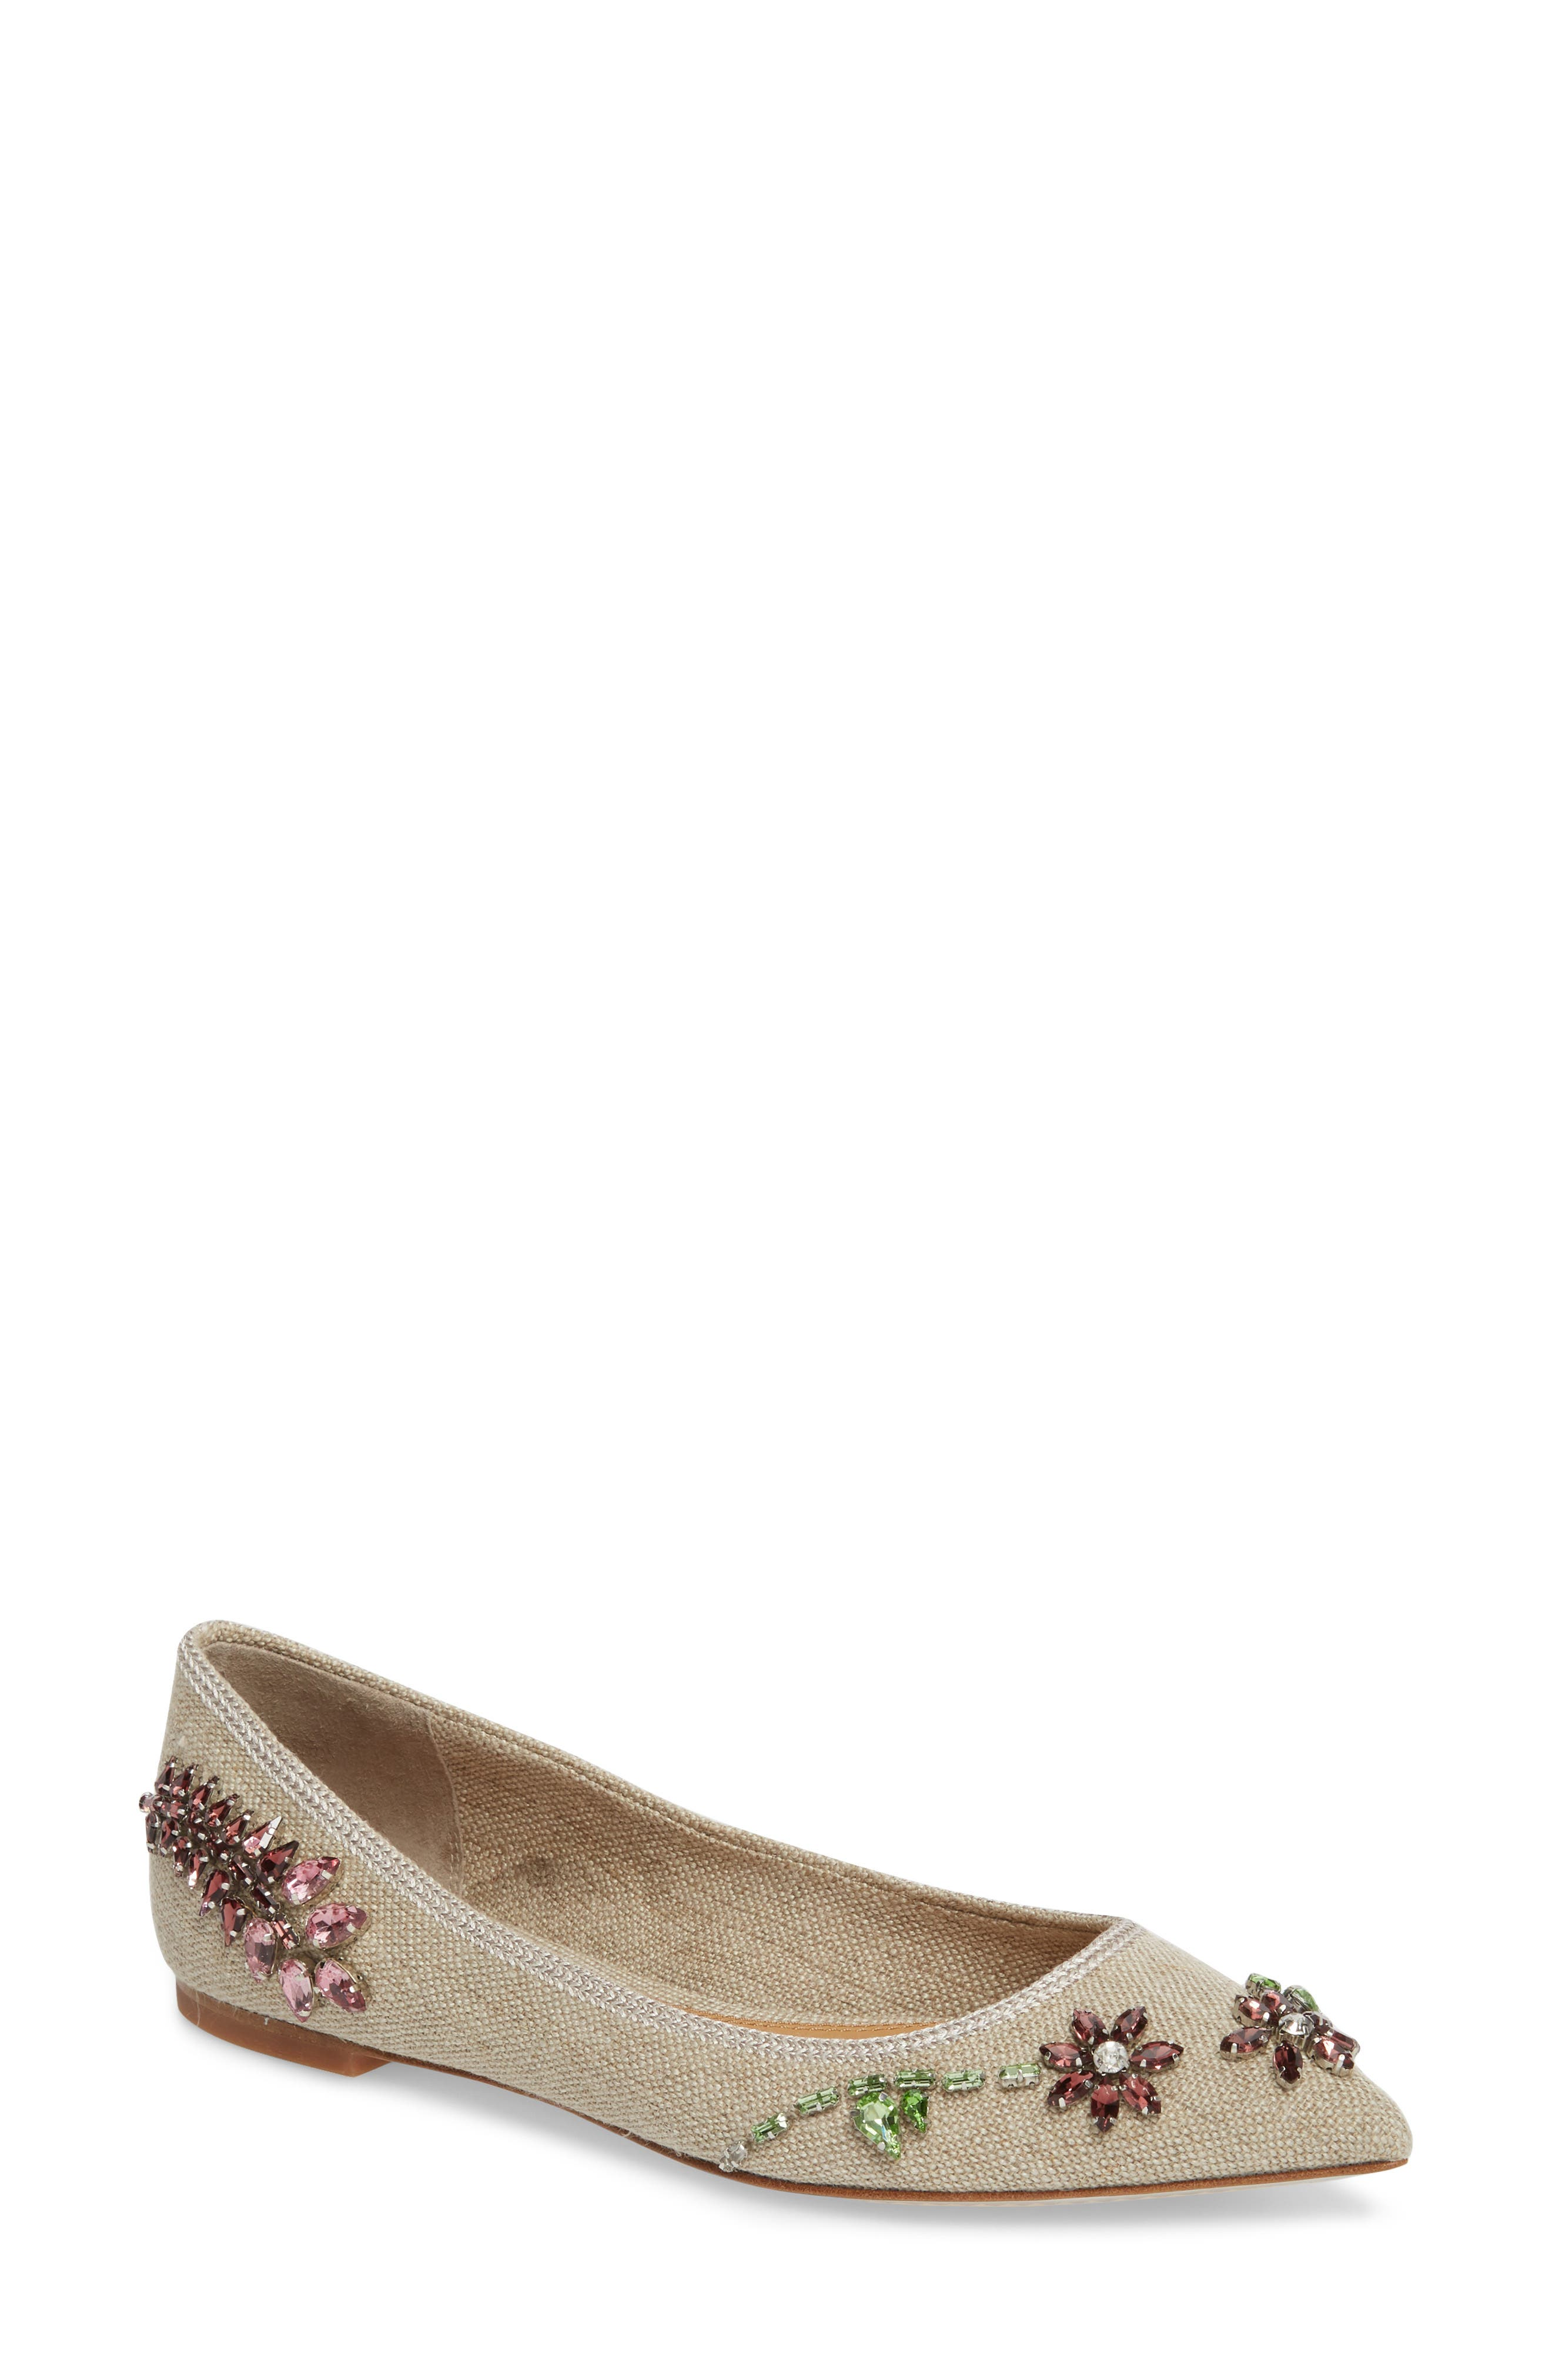 Meadow Embellished Pointy Toe Flat,                             Main thumbnail 1, color,                             021